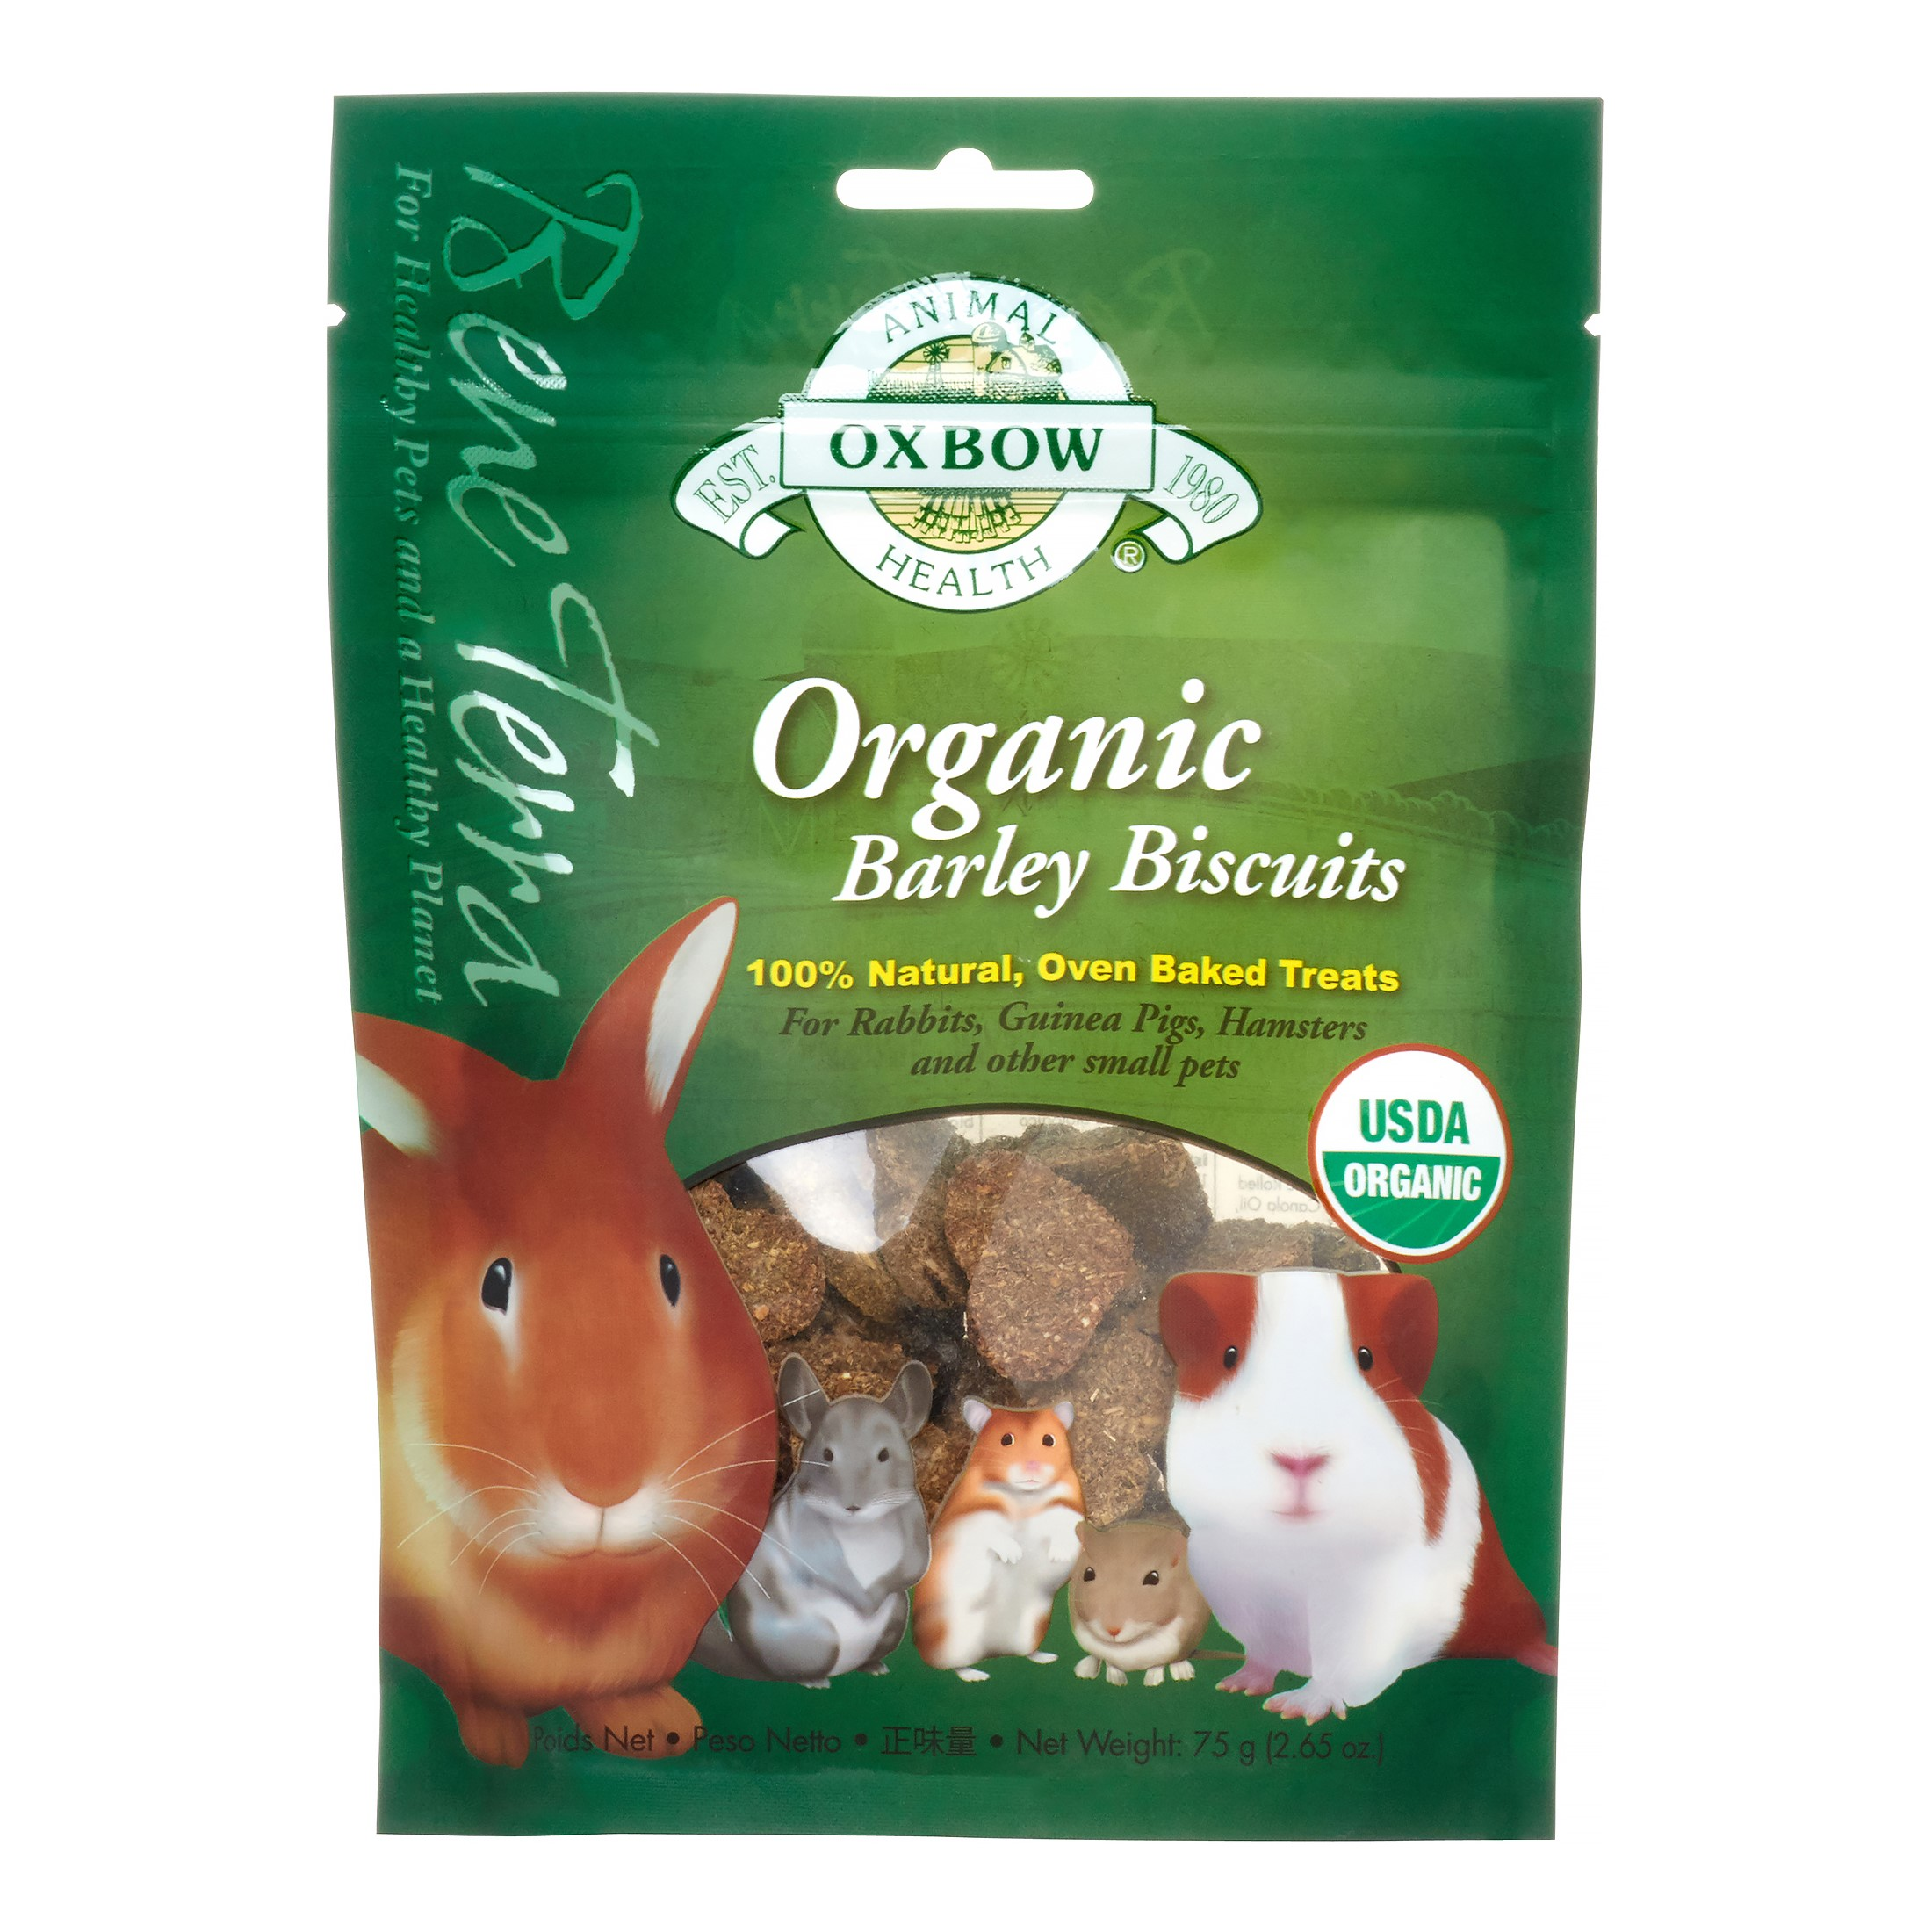 Oxbow Organic Small Animal Treats, Barley Biscuits, 2.65 Oz